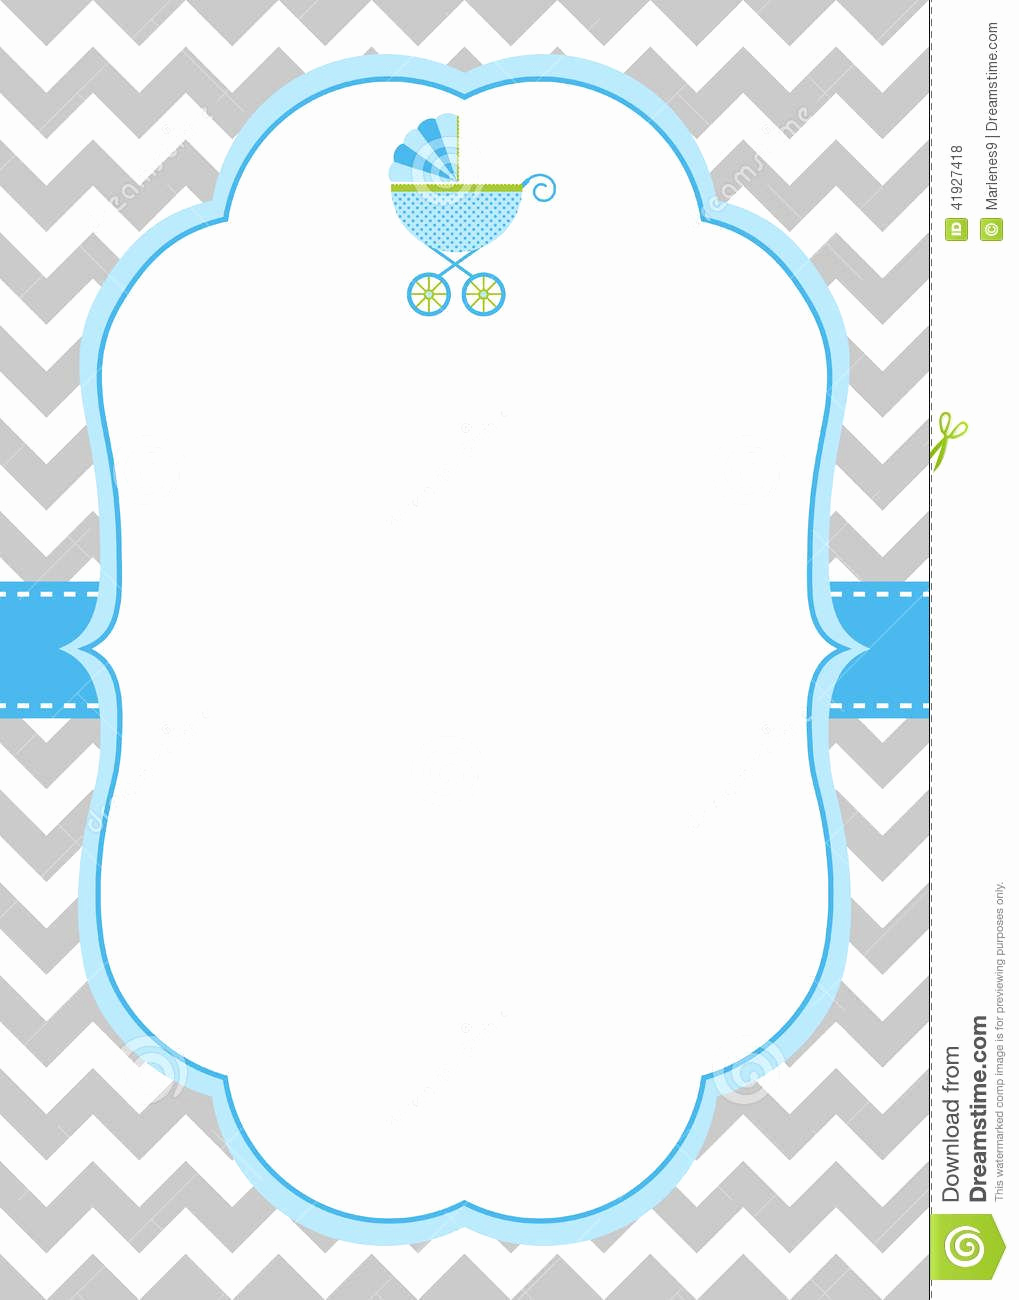 Free Baby Shower Templates Elegant Template Invitation Spa Birthday Party Invitations Baby